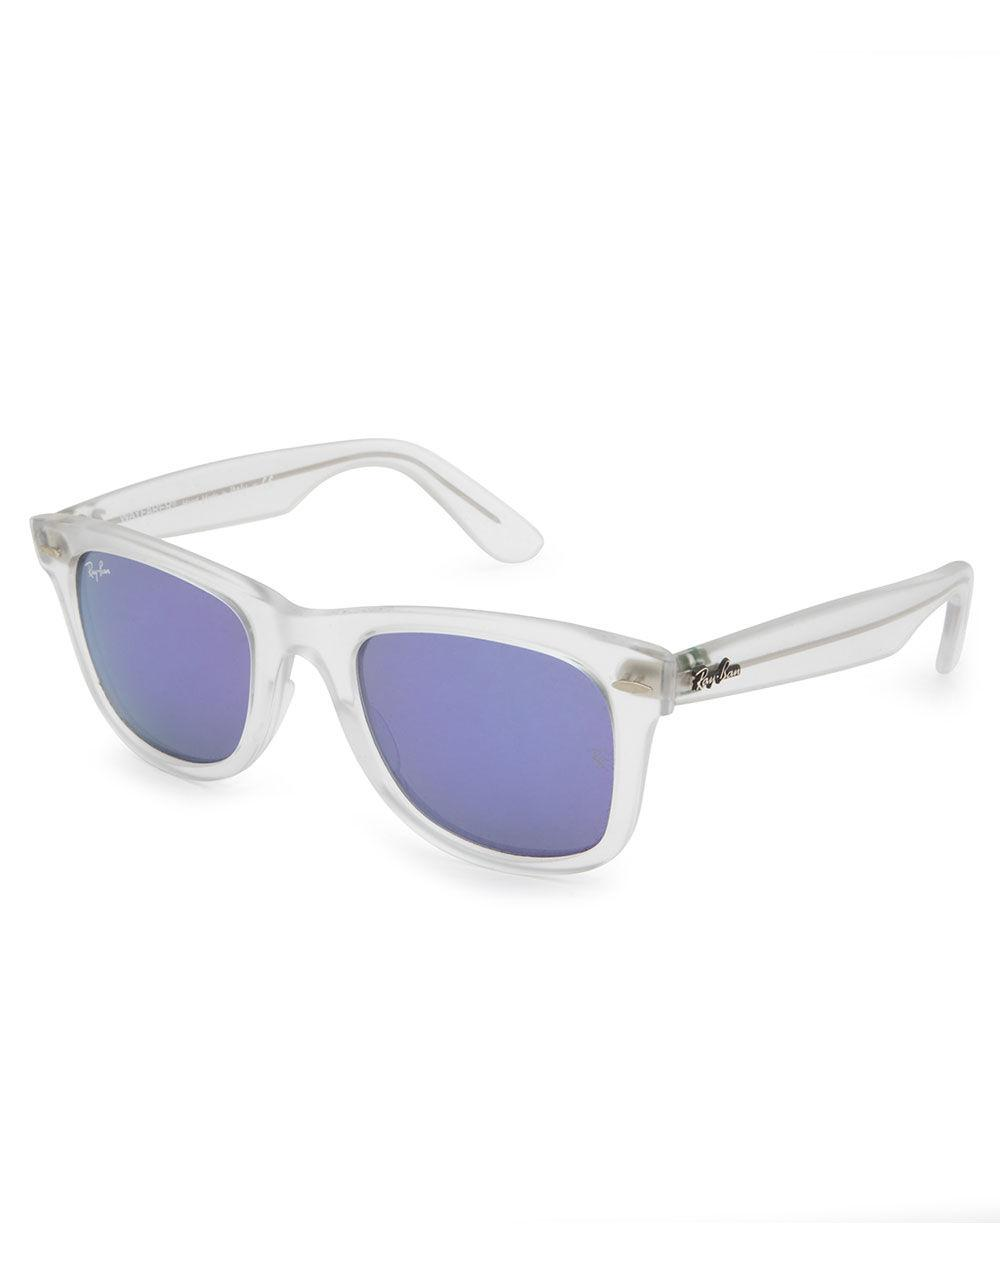 d9006dae2da Ray-Ban. Women s Purple Wayfarer Ease Transparent   Violet Mirror Sunglasses